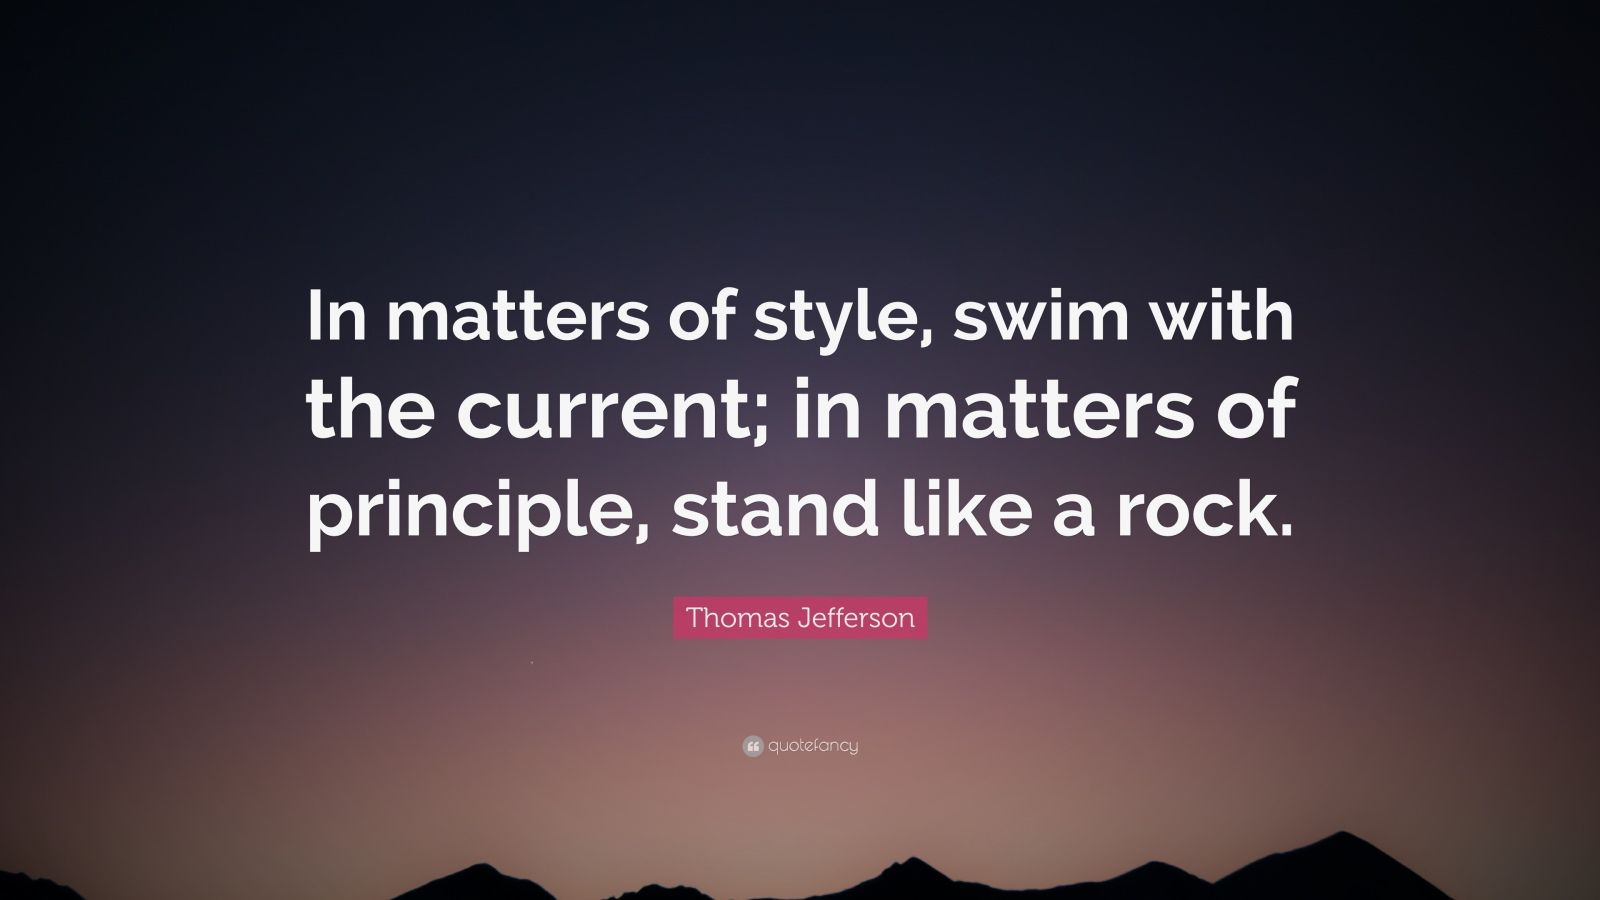 "matter of principle An inspirational quote by thomas jefferson about the value of integrity: ""in  matters of principle, stand like a rock in matters of taste, swim with the current ."